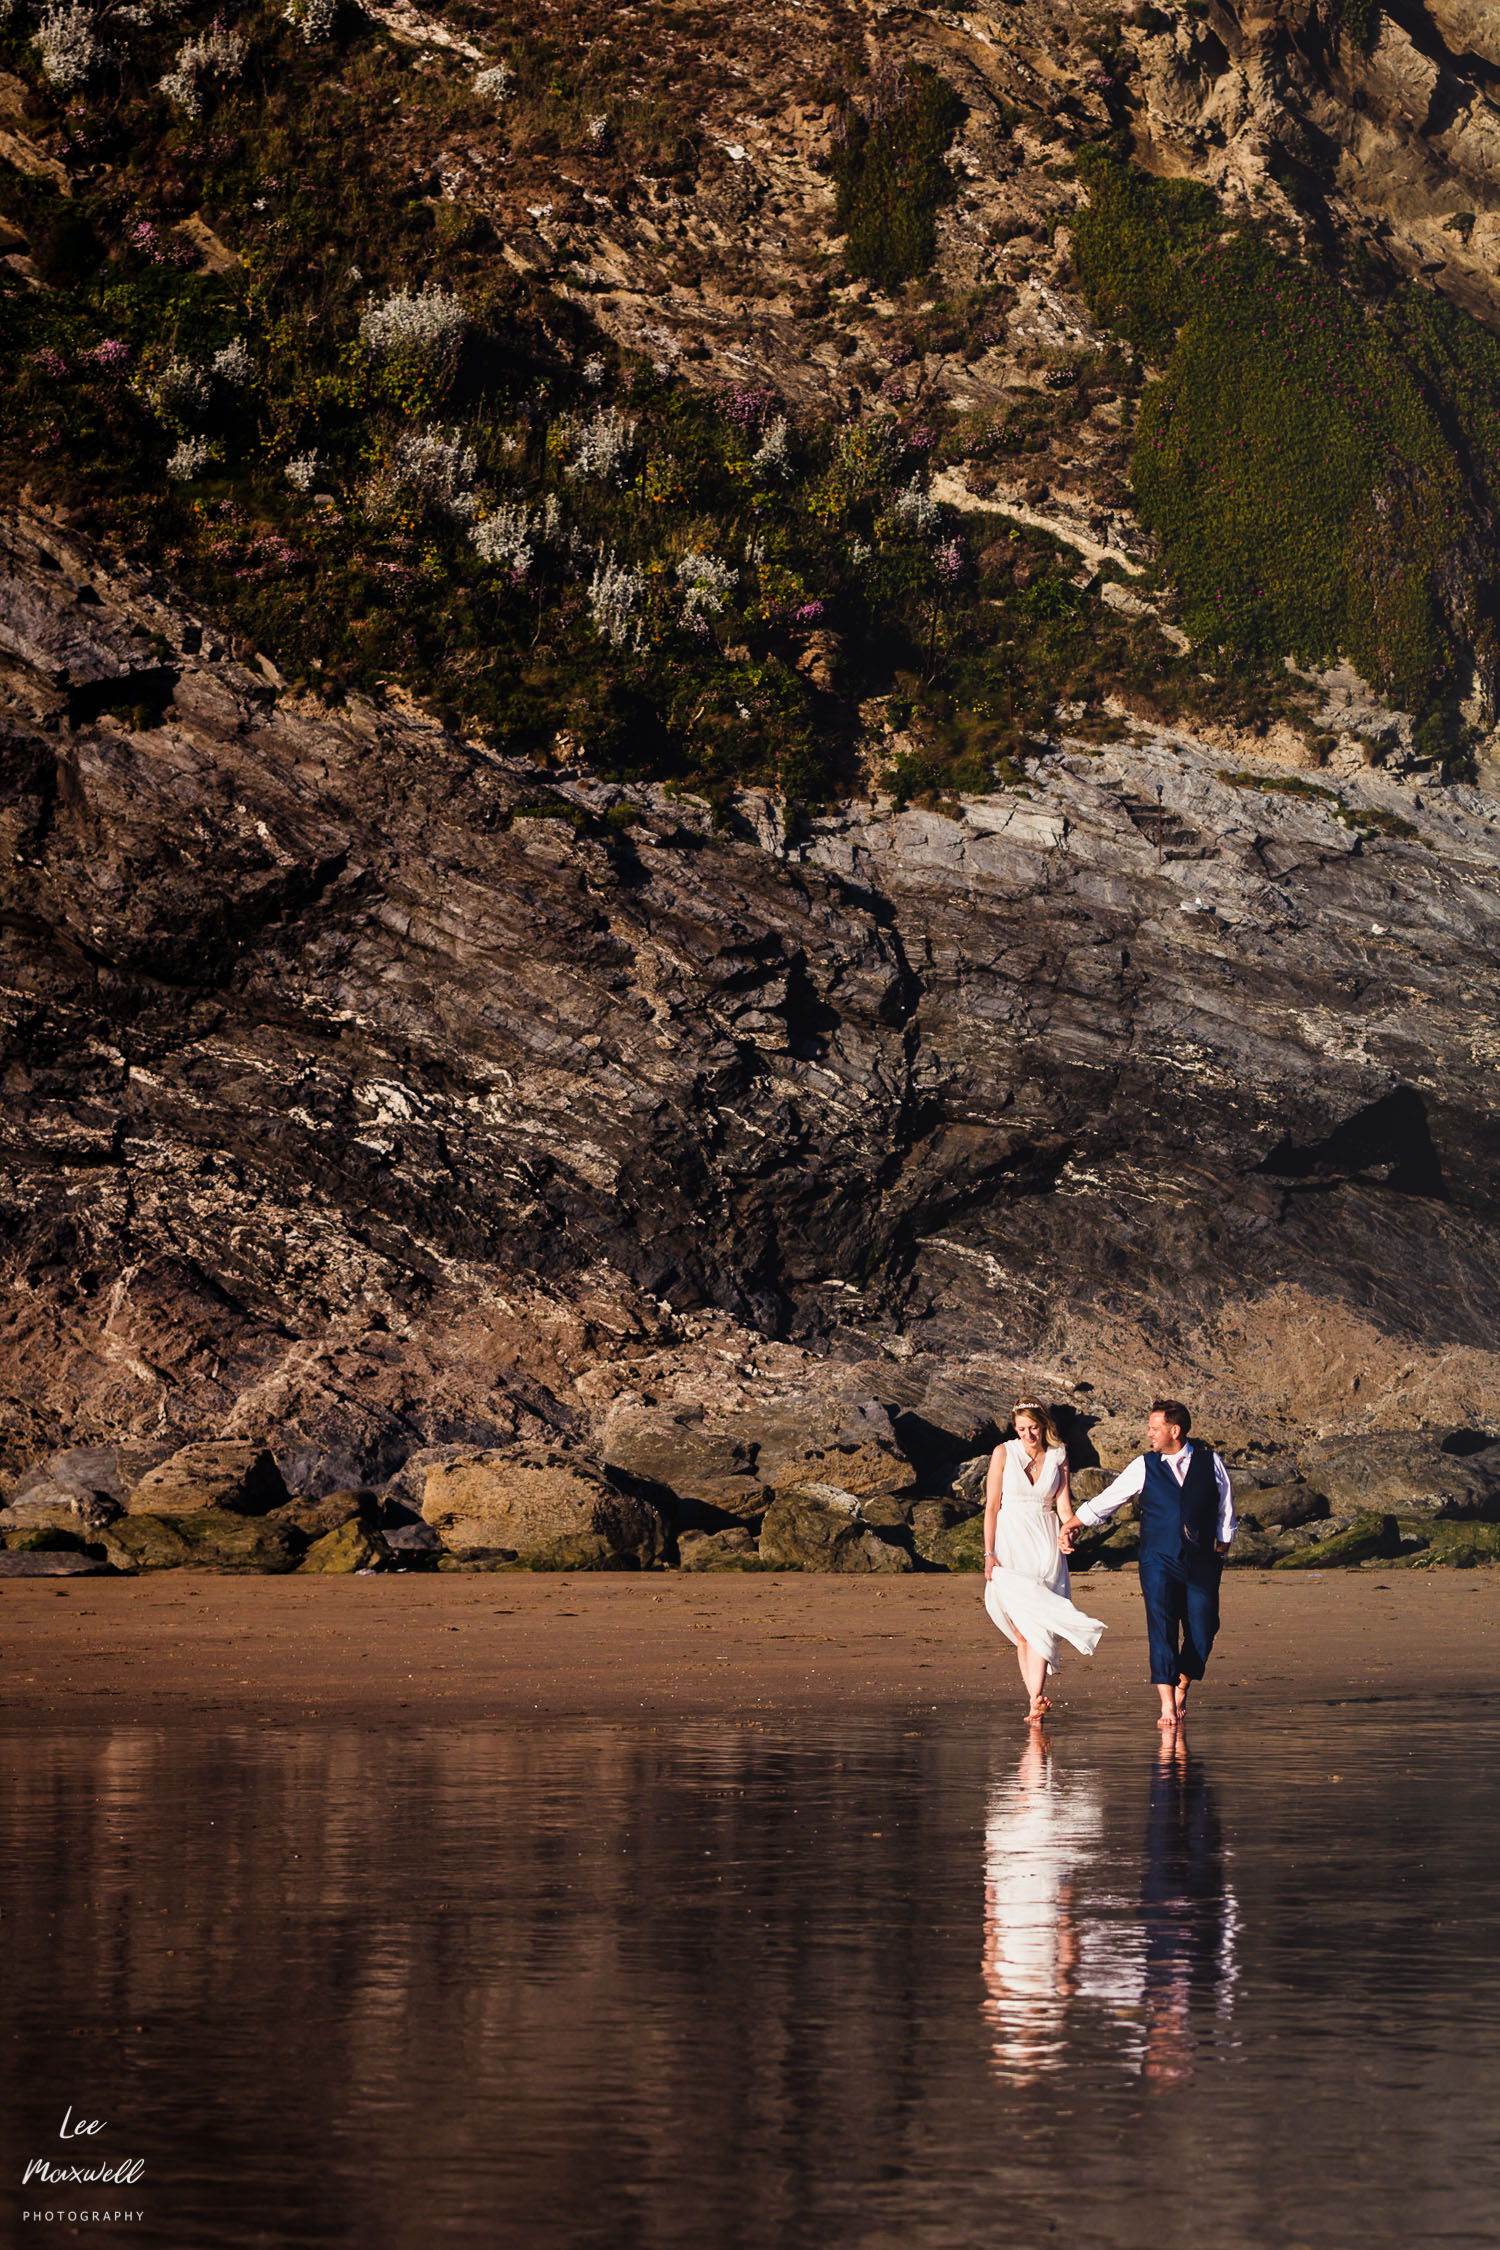 Wedding photography at Lusty Glaze